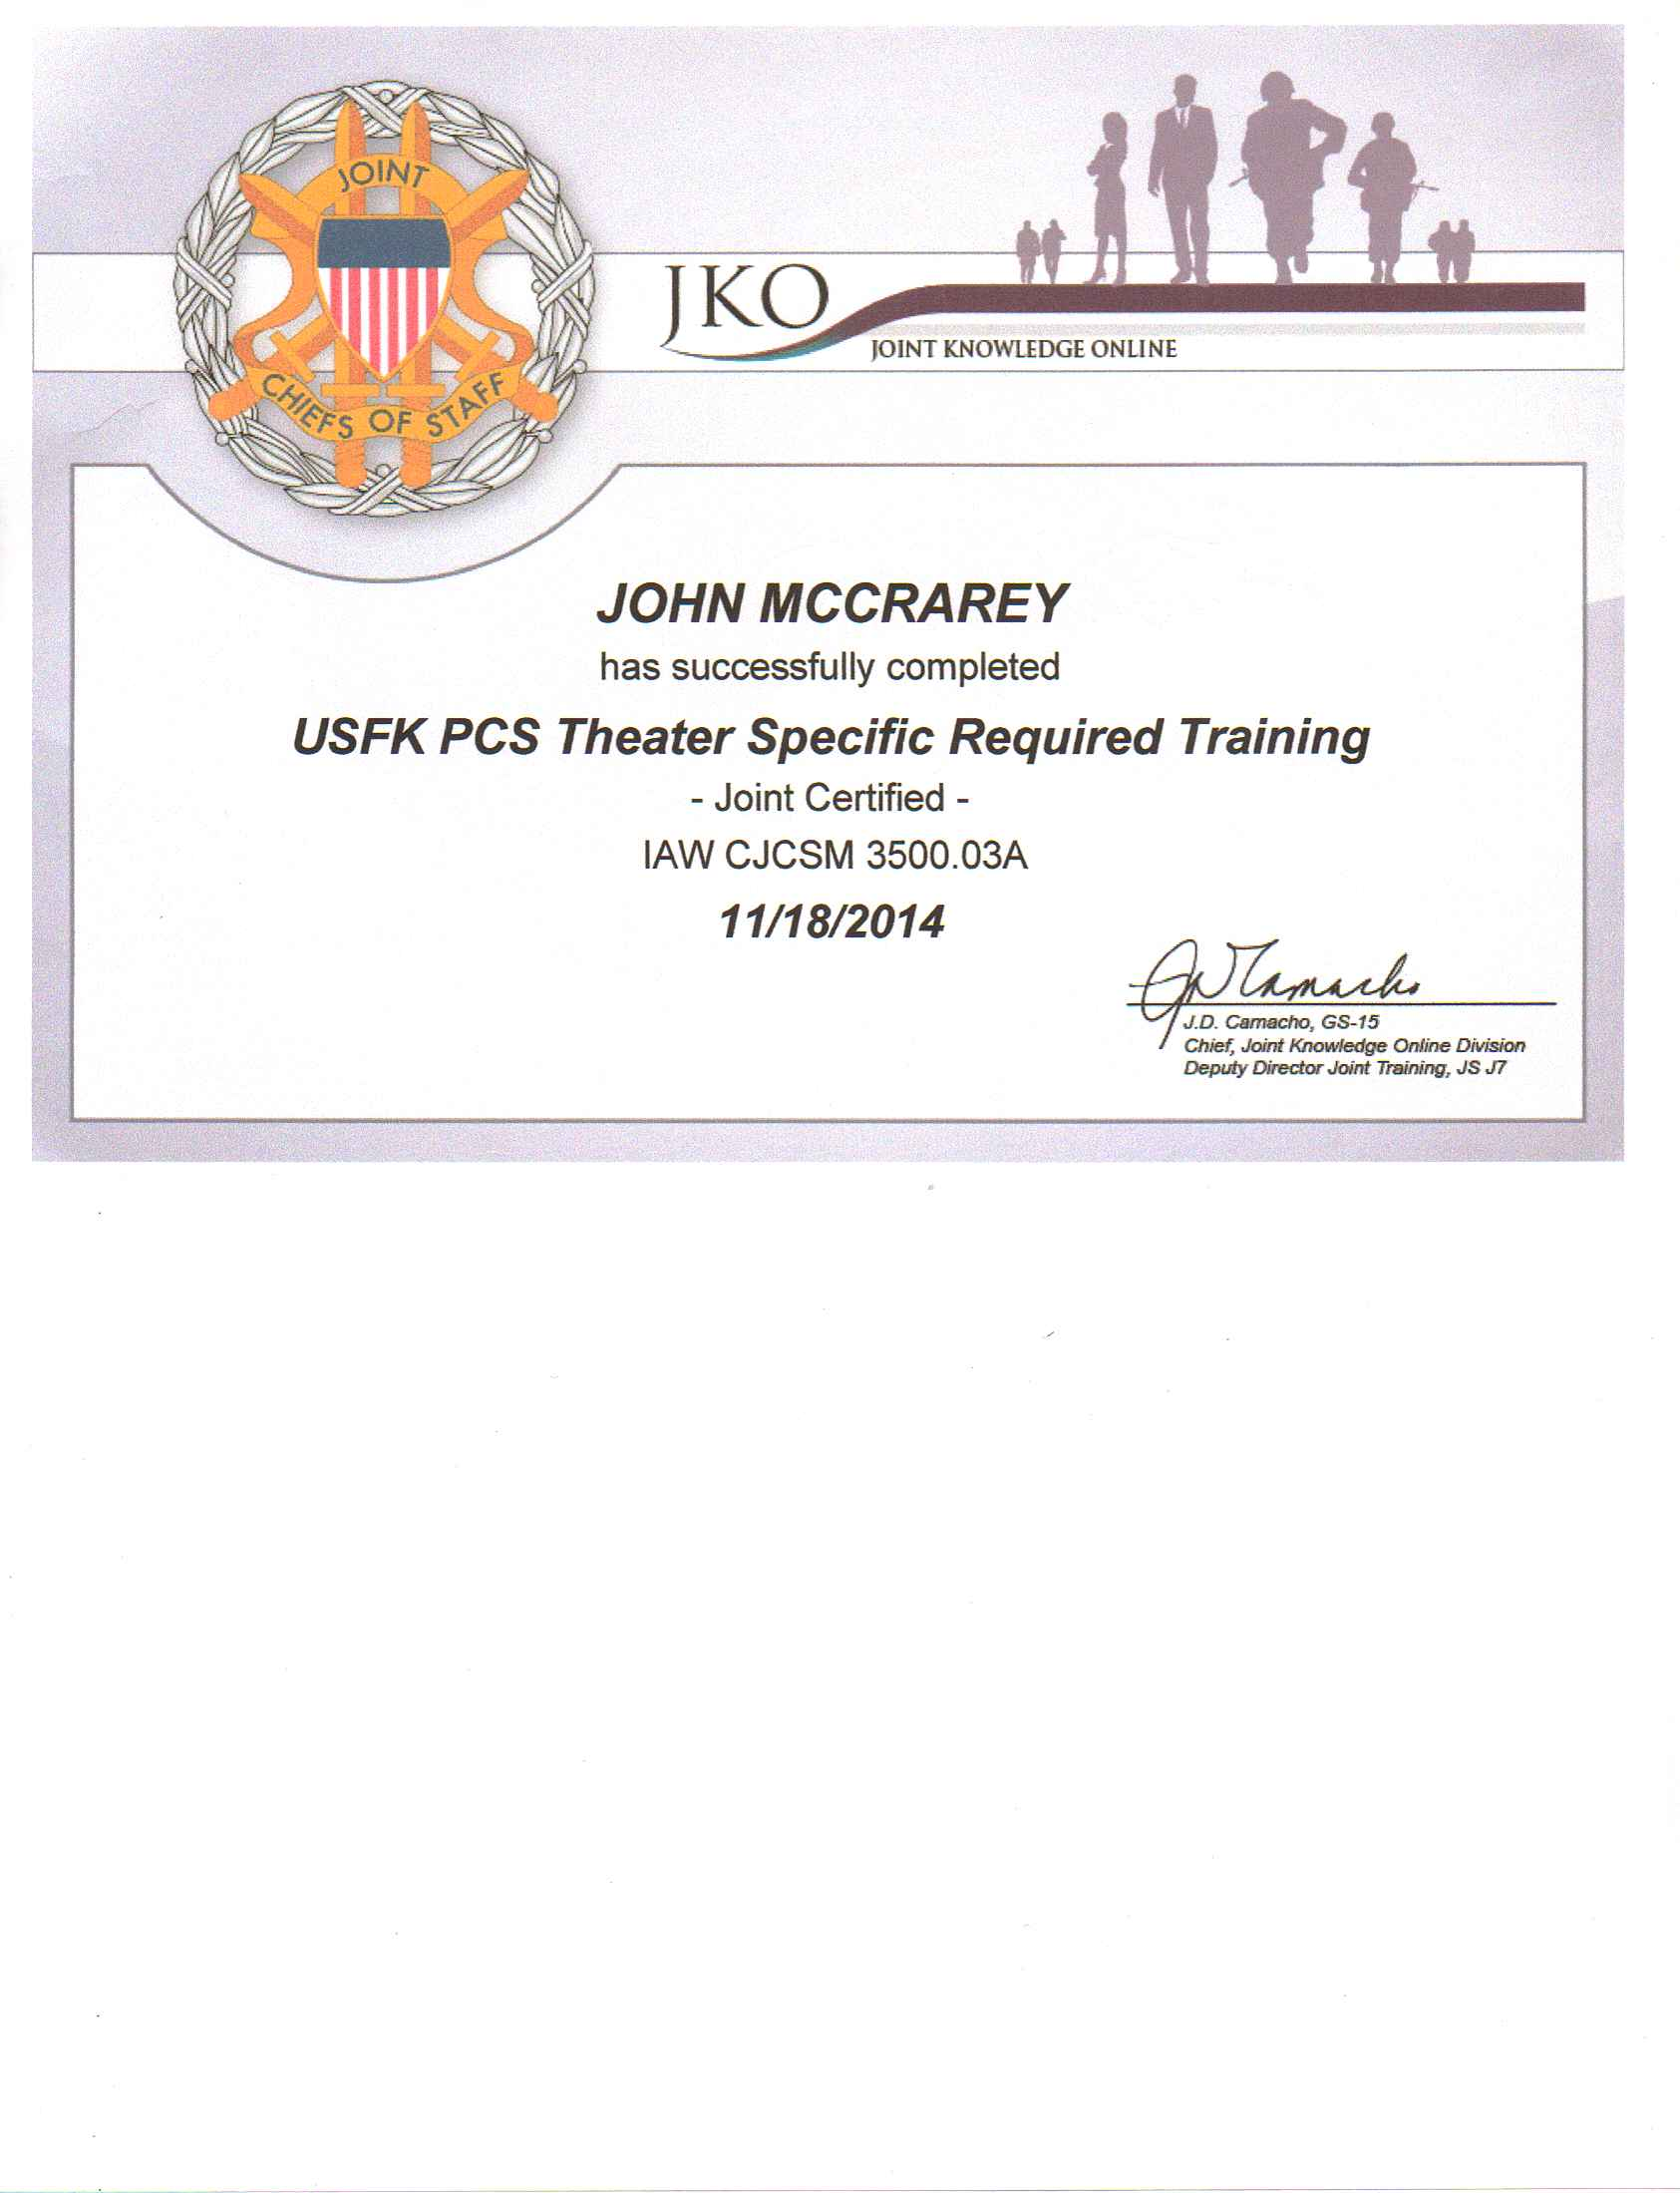 trainingcert